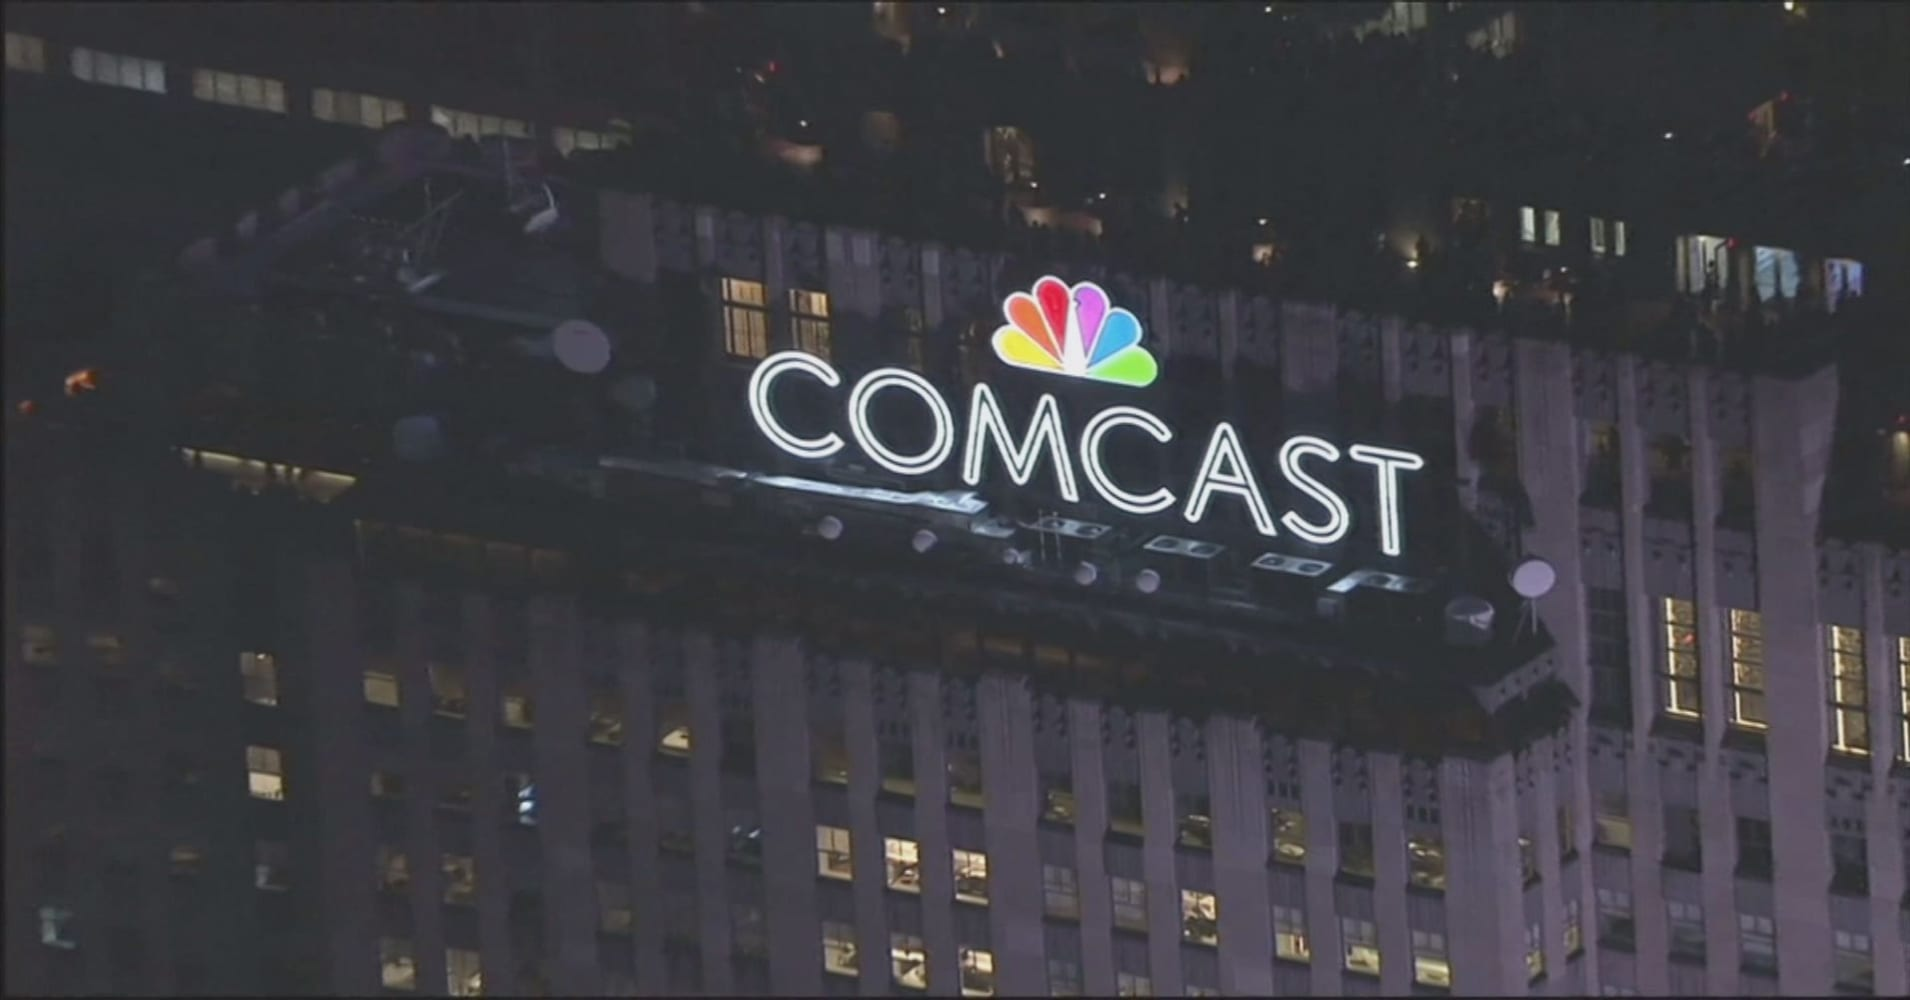 Comcast Quote Comcast Shares Down On Subscriber Loss News